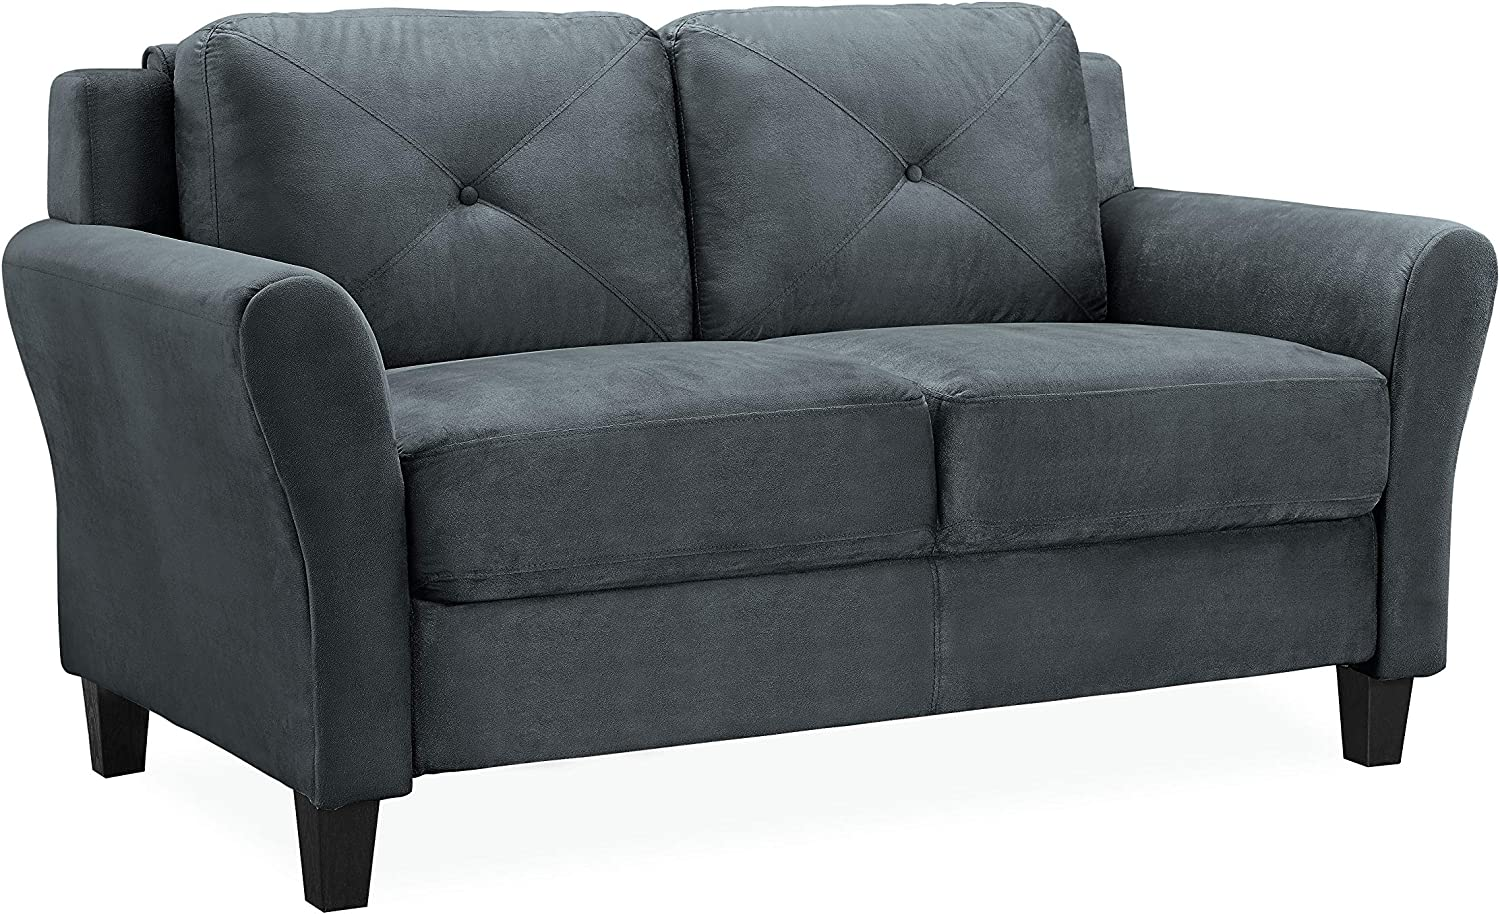 Lifestyle Solutions Collection Grayson Micro-fabric Loveseat, 57.87